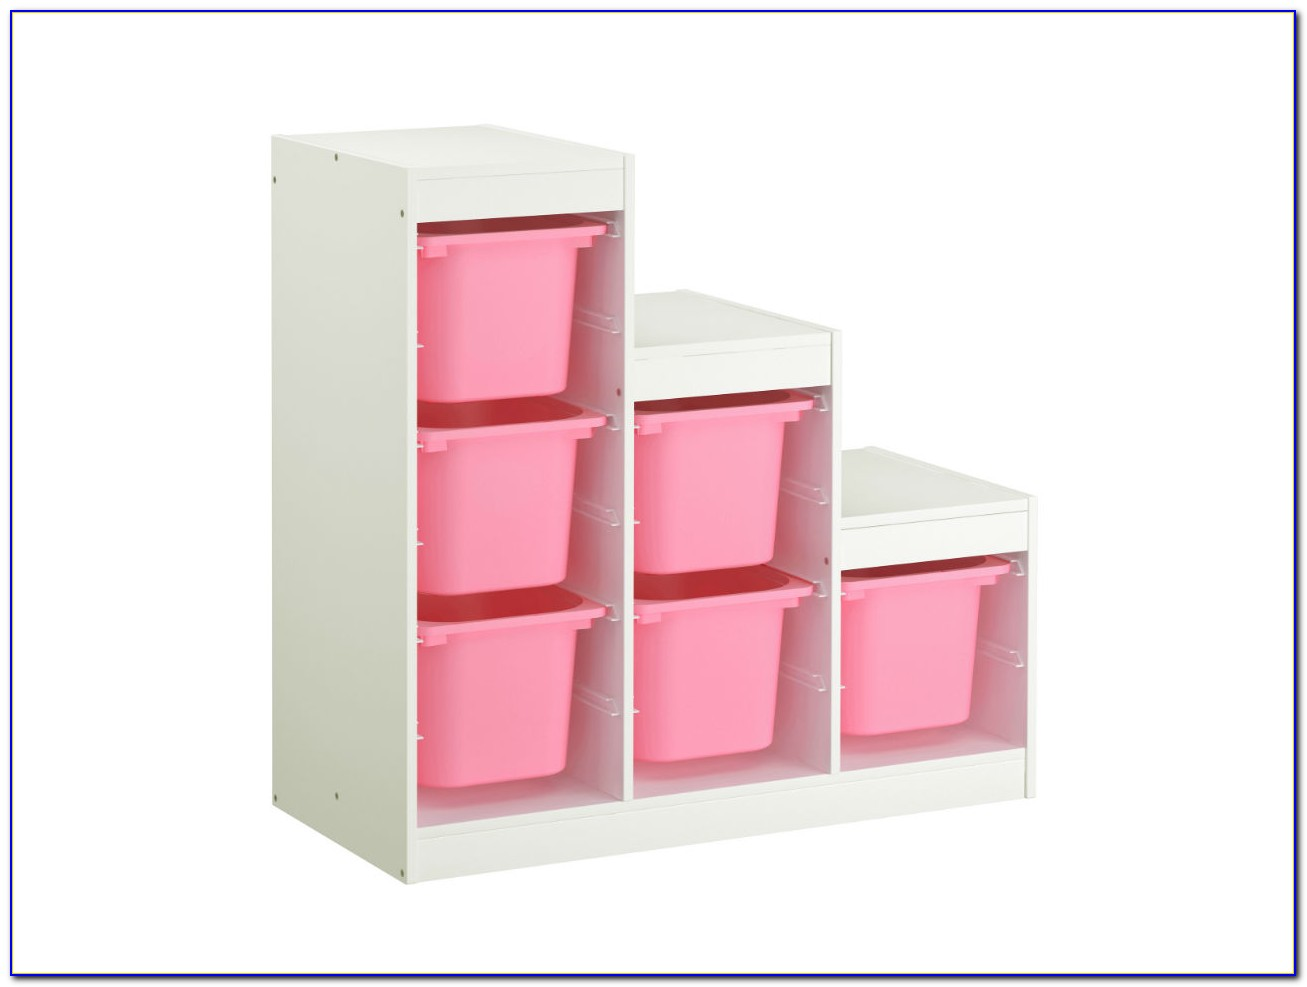 Babyletto Tree Bookcase Dimensions